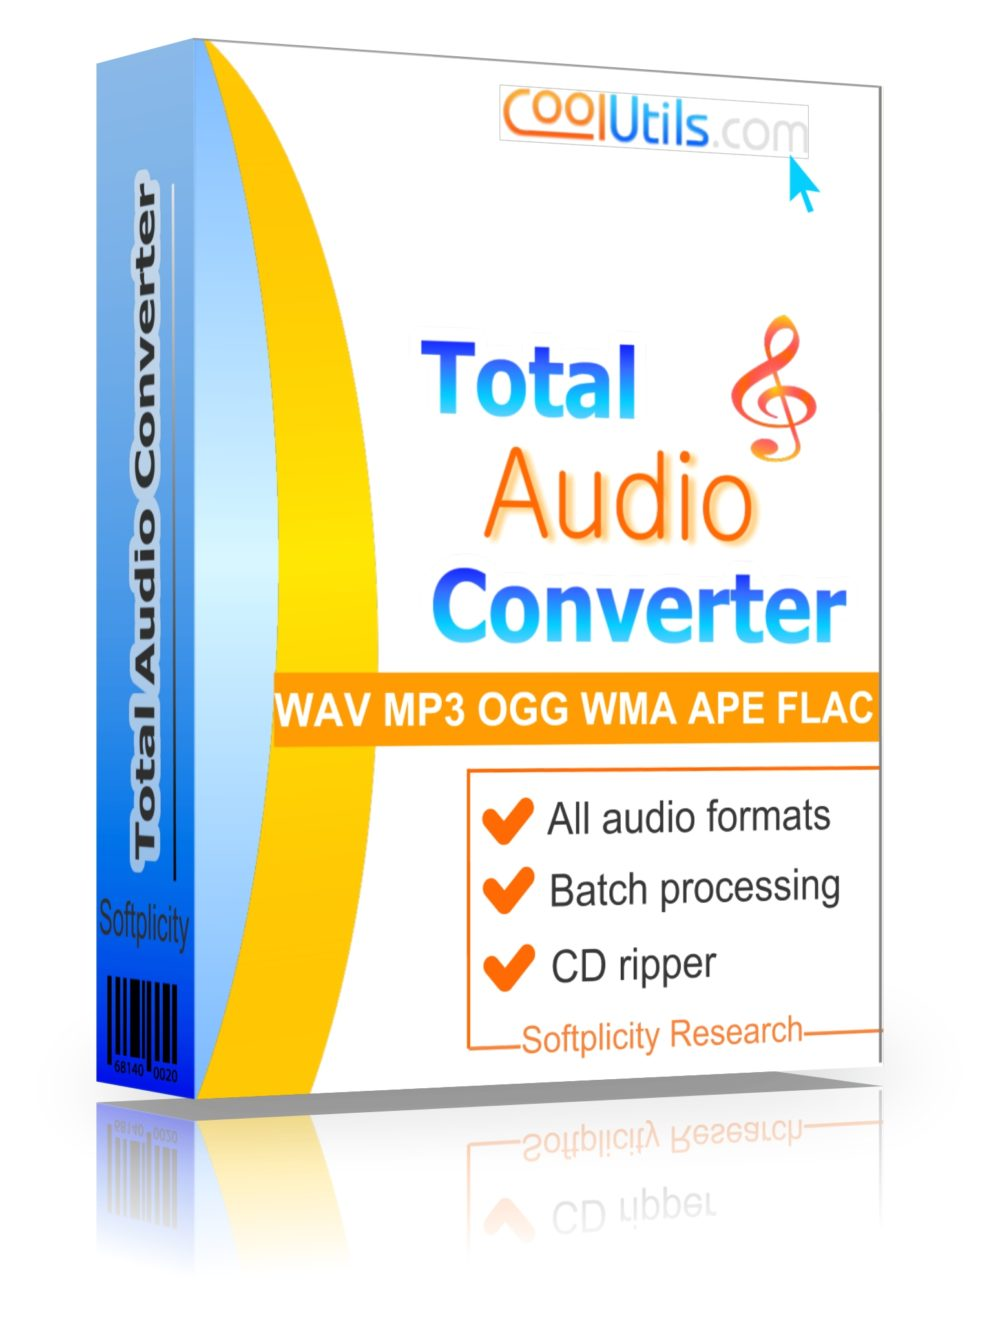 Total Audio Converter - Convert almost any audio to WAV, MP3